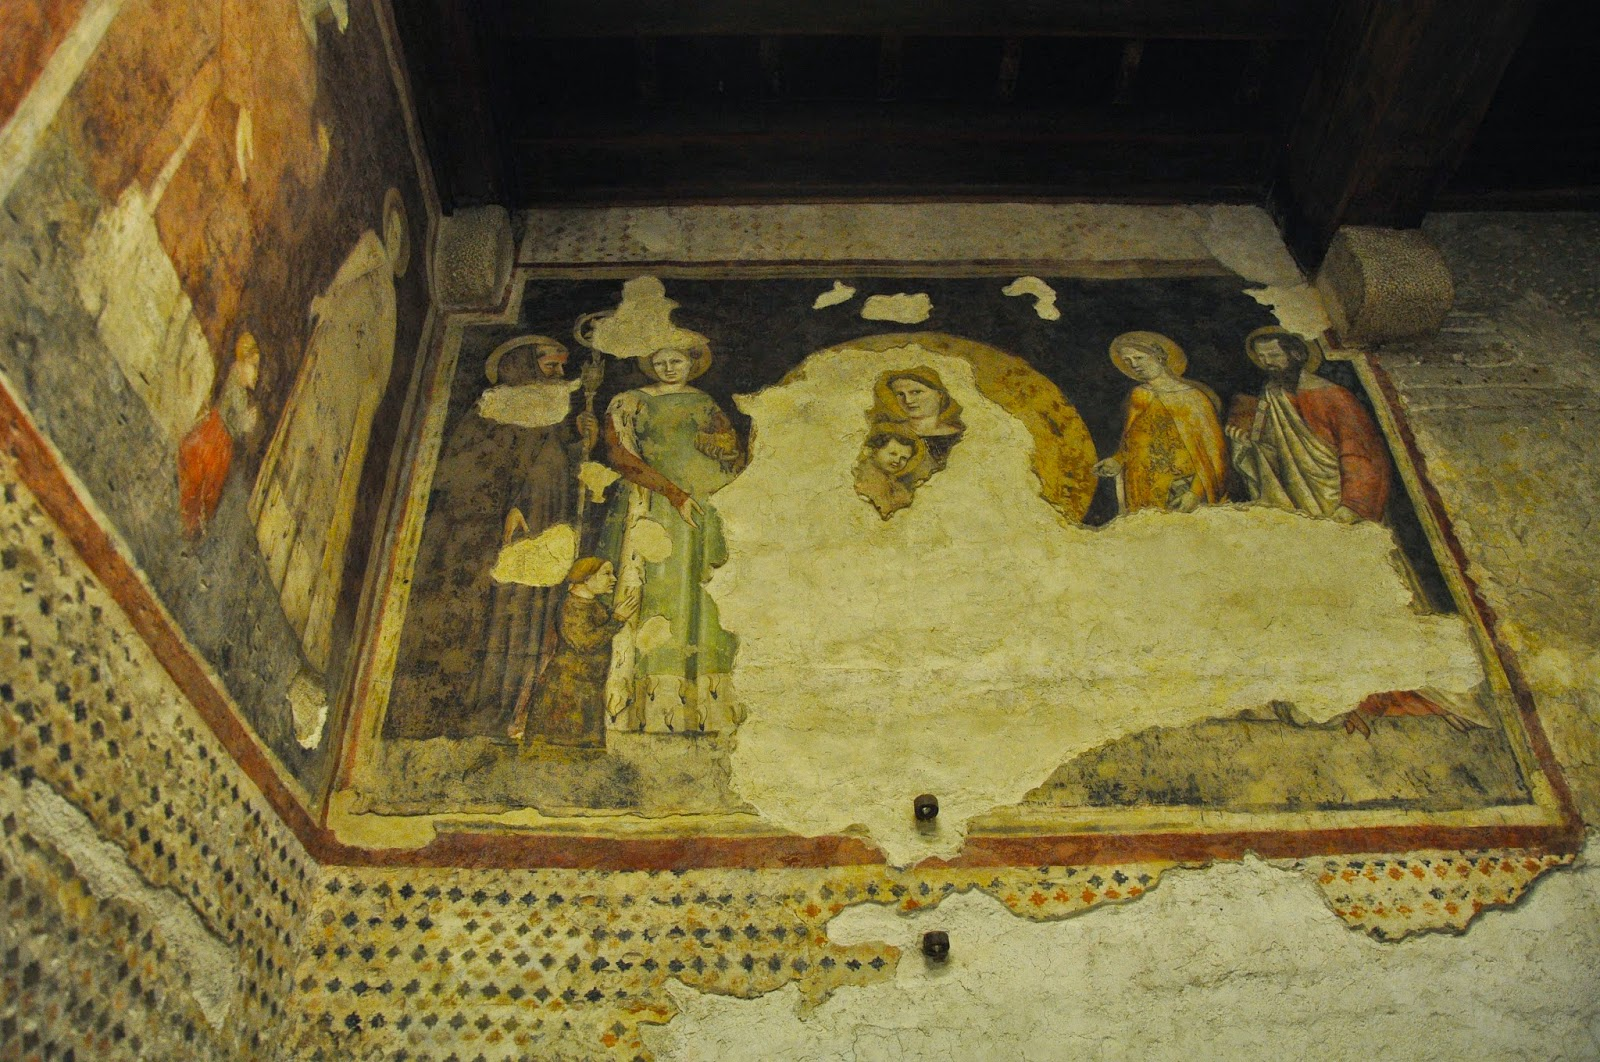 Preserved painting on a wall of a room in the Museum of Castelvecchio in Verona